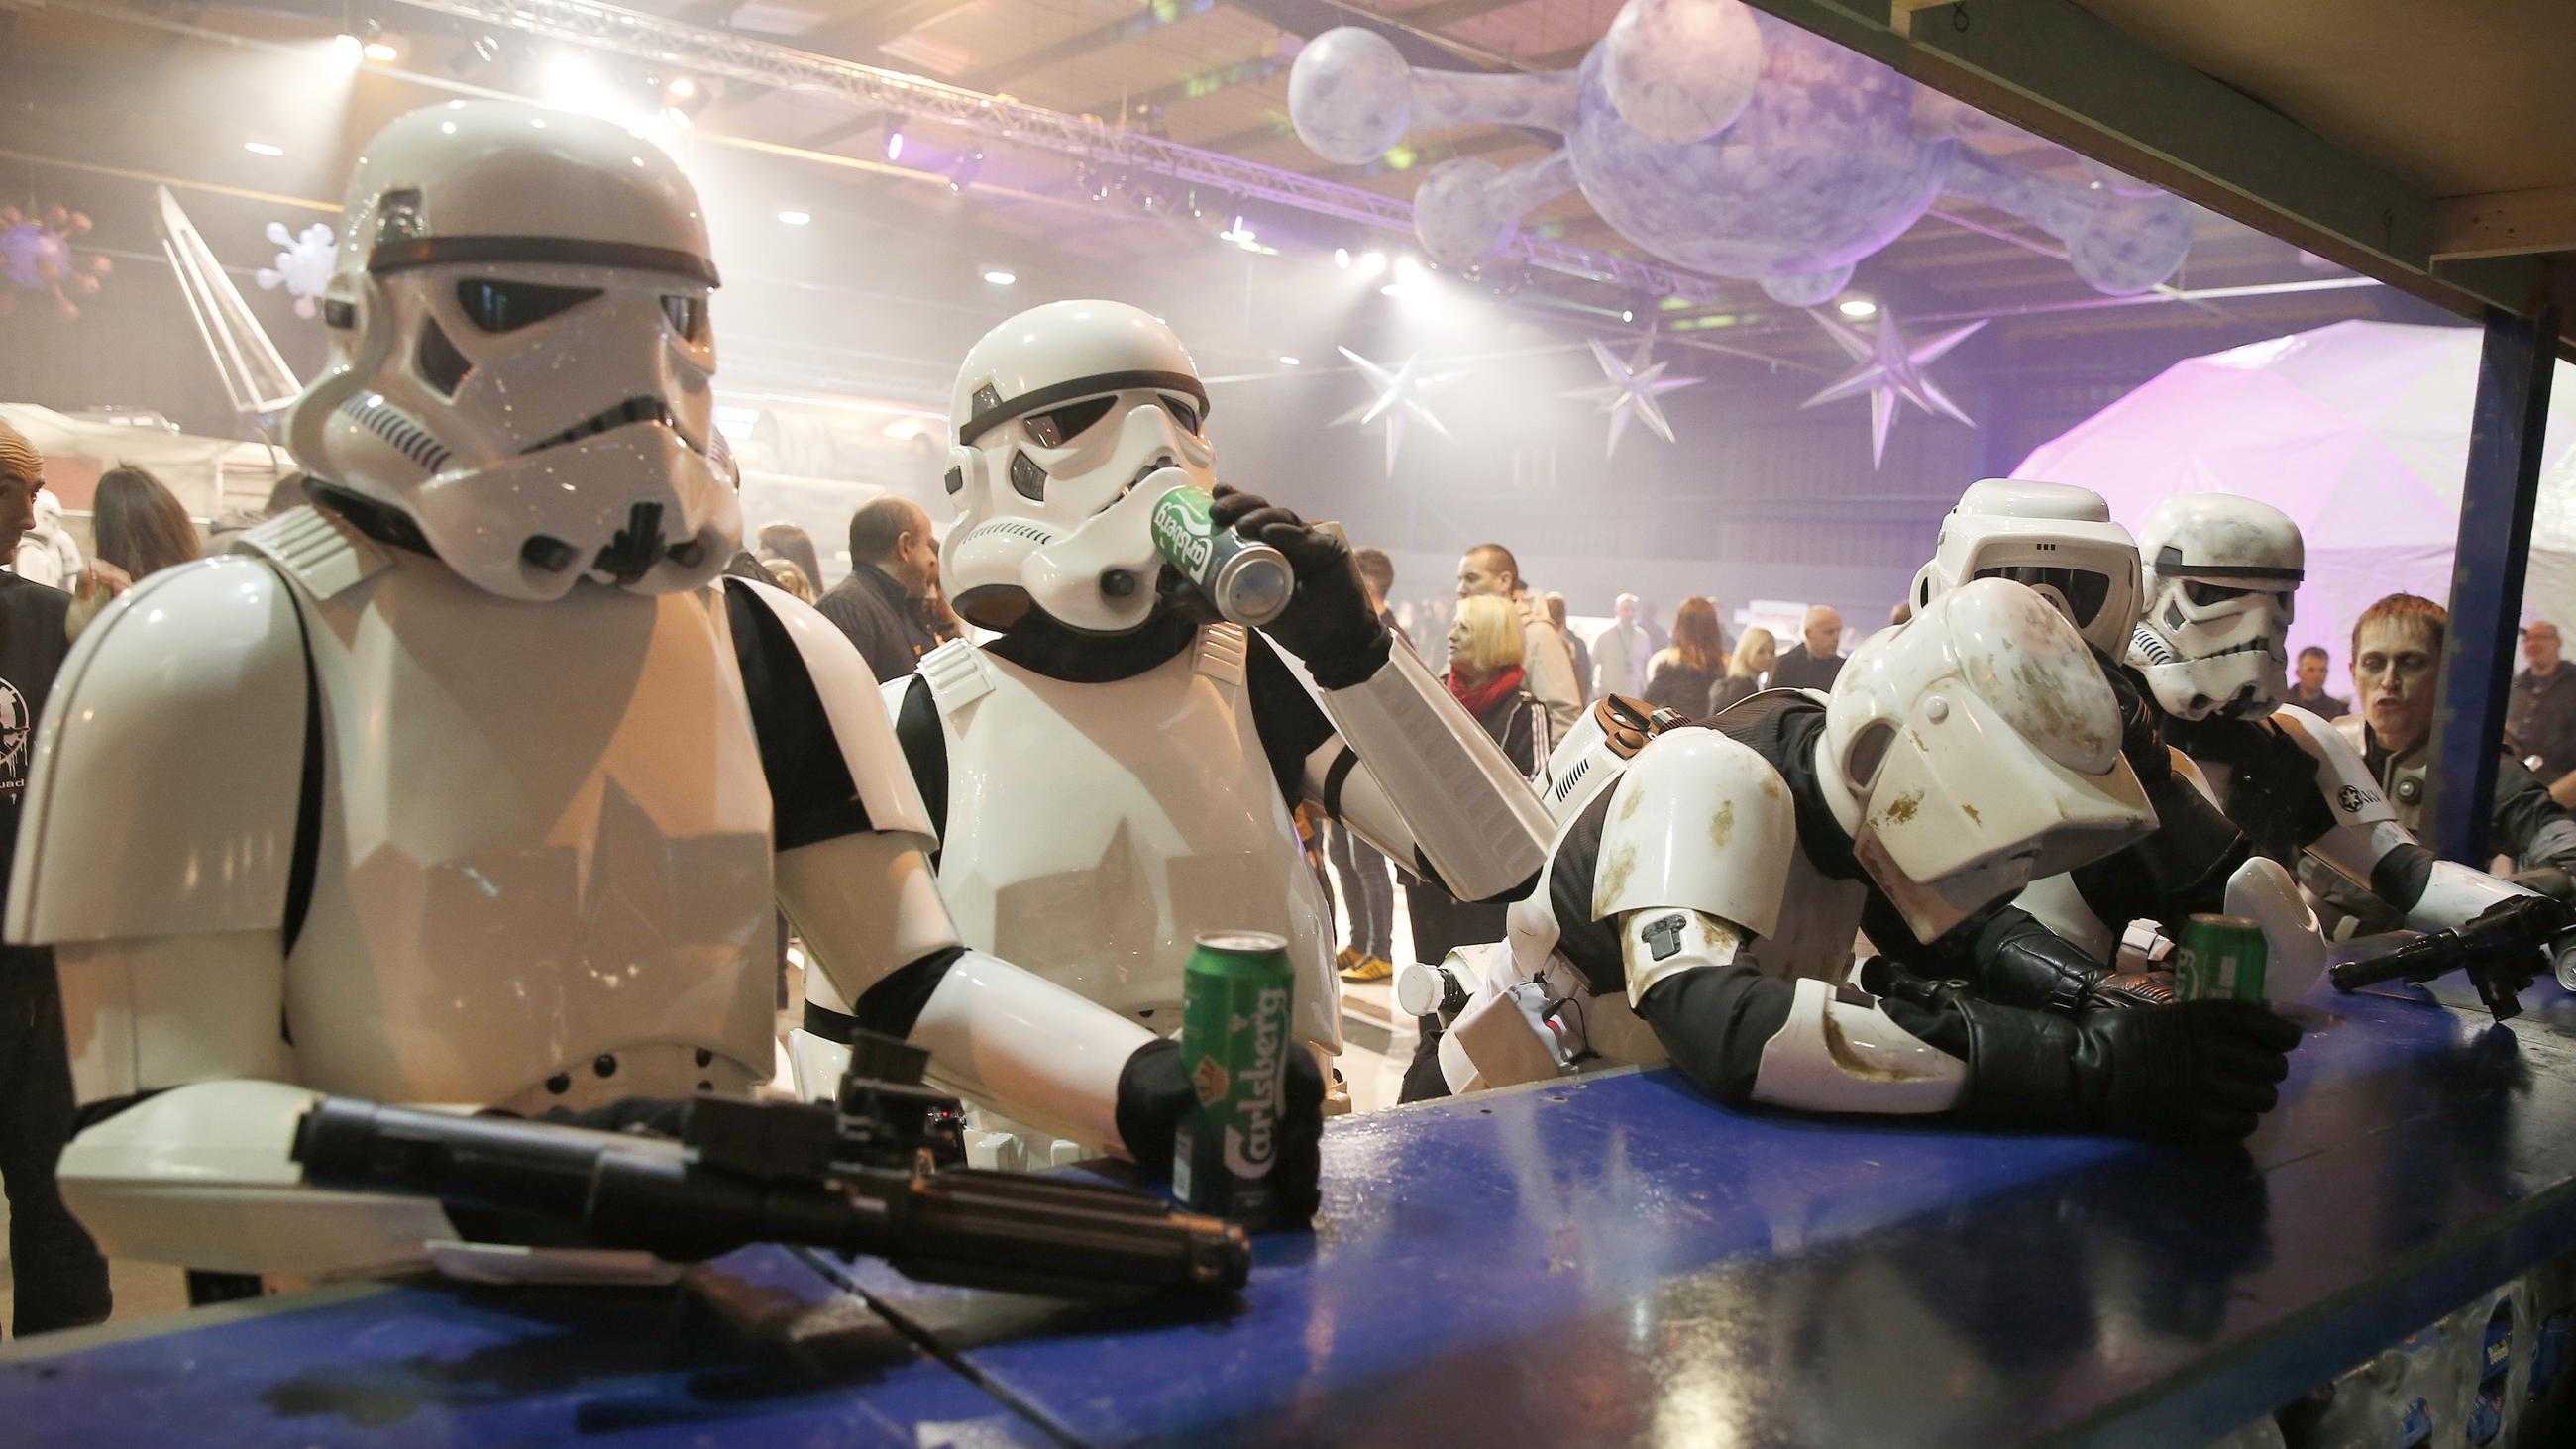 People dressed as Storm troopers stand at a bar as they pose for a photograph holding cans of beer at the 'For The Love of The Force' Star Wars fan convention in Manchester, northern England, December 4, 2015.